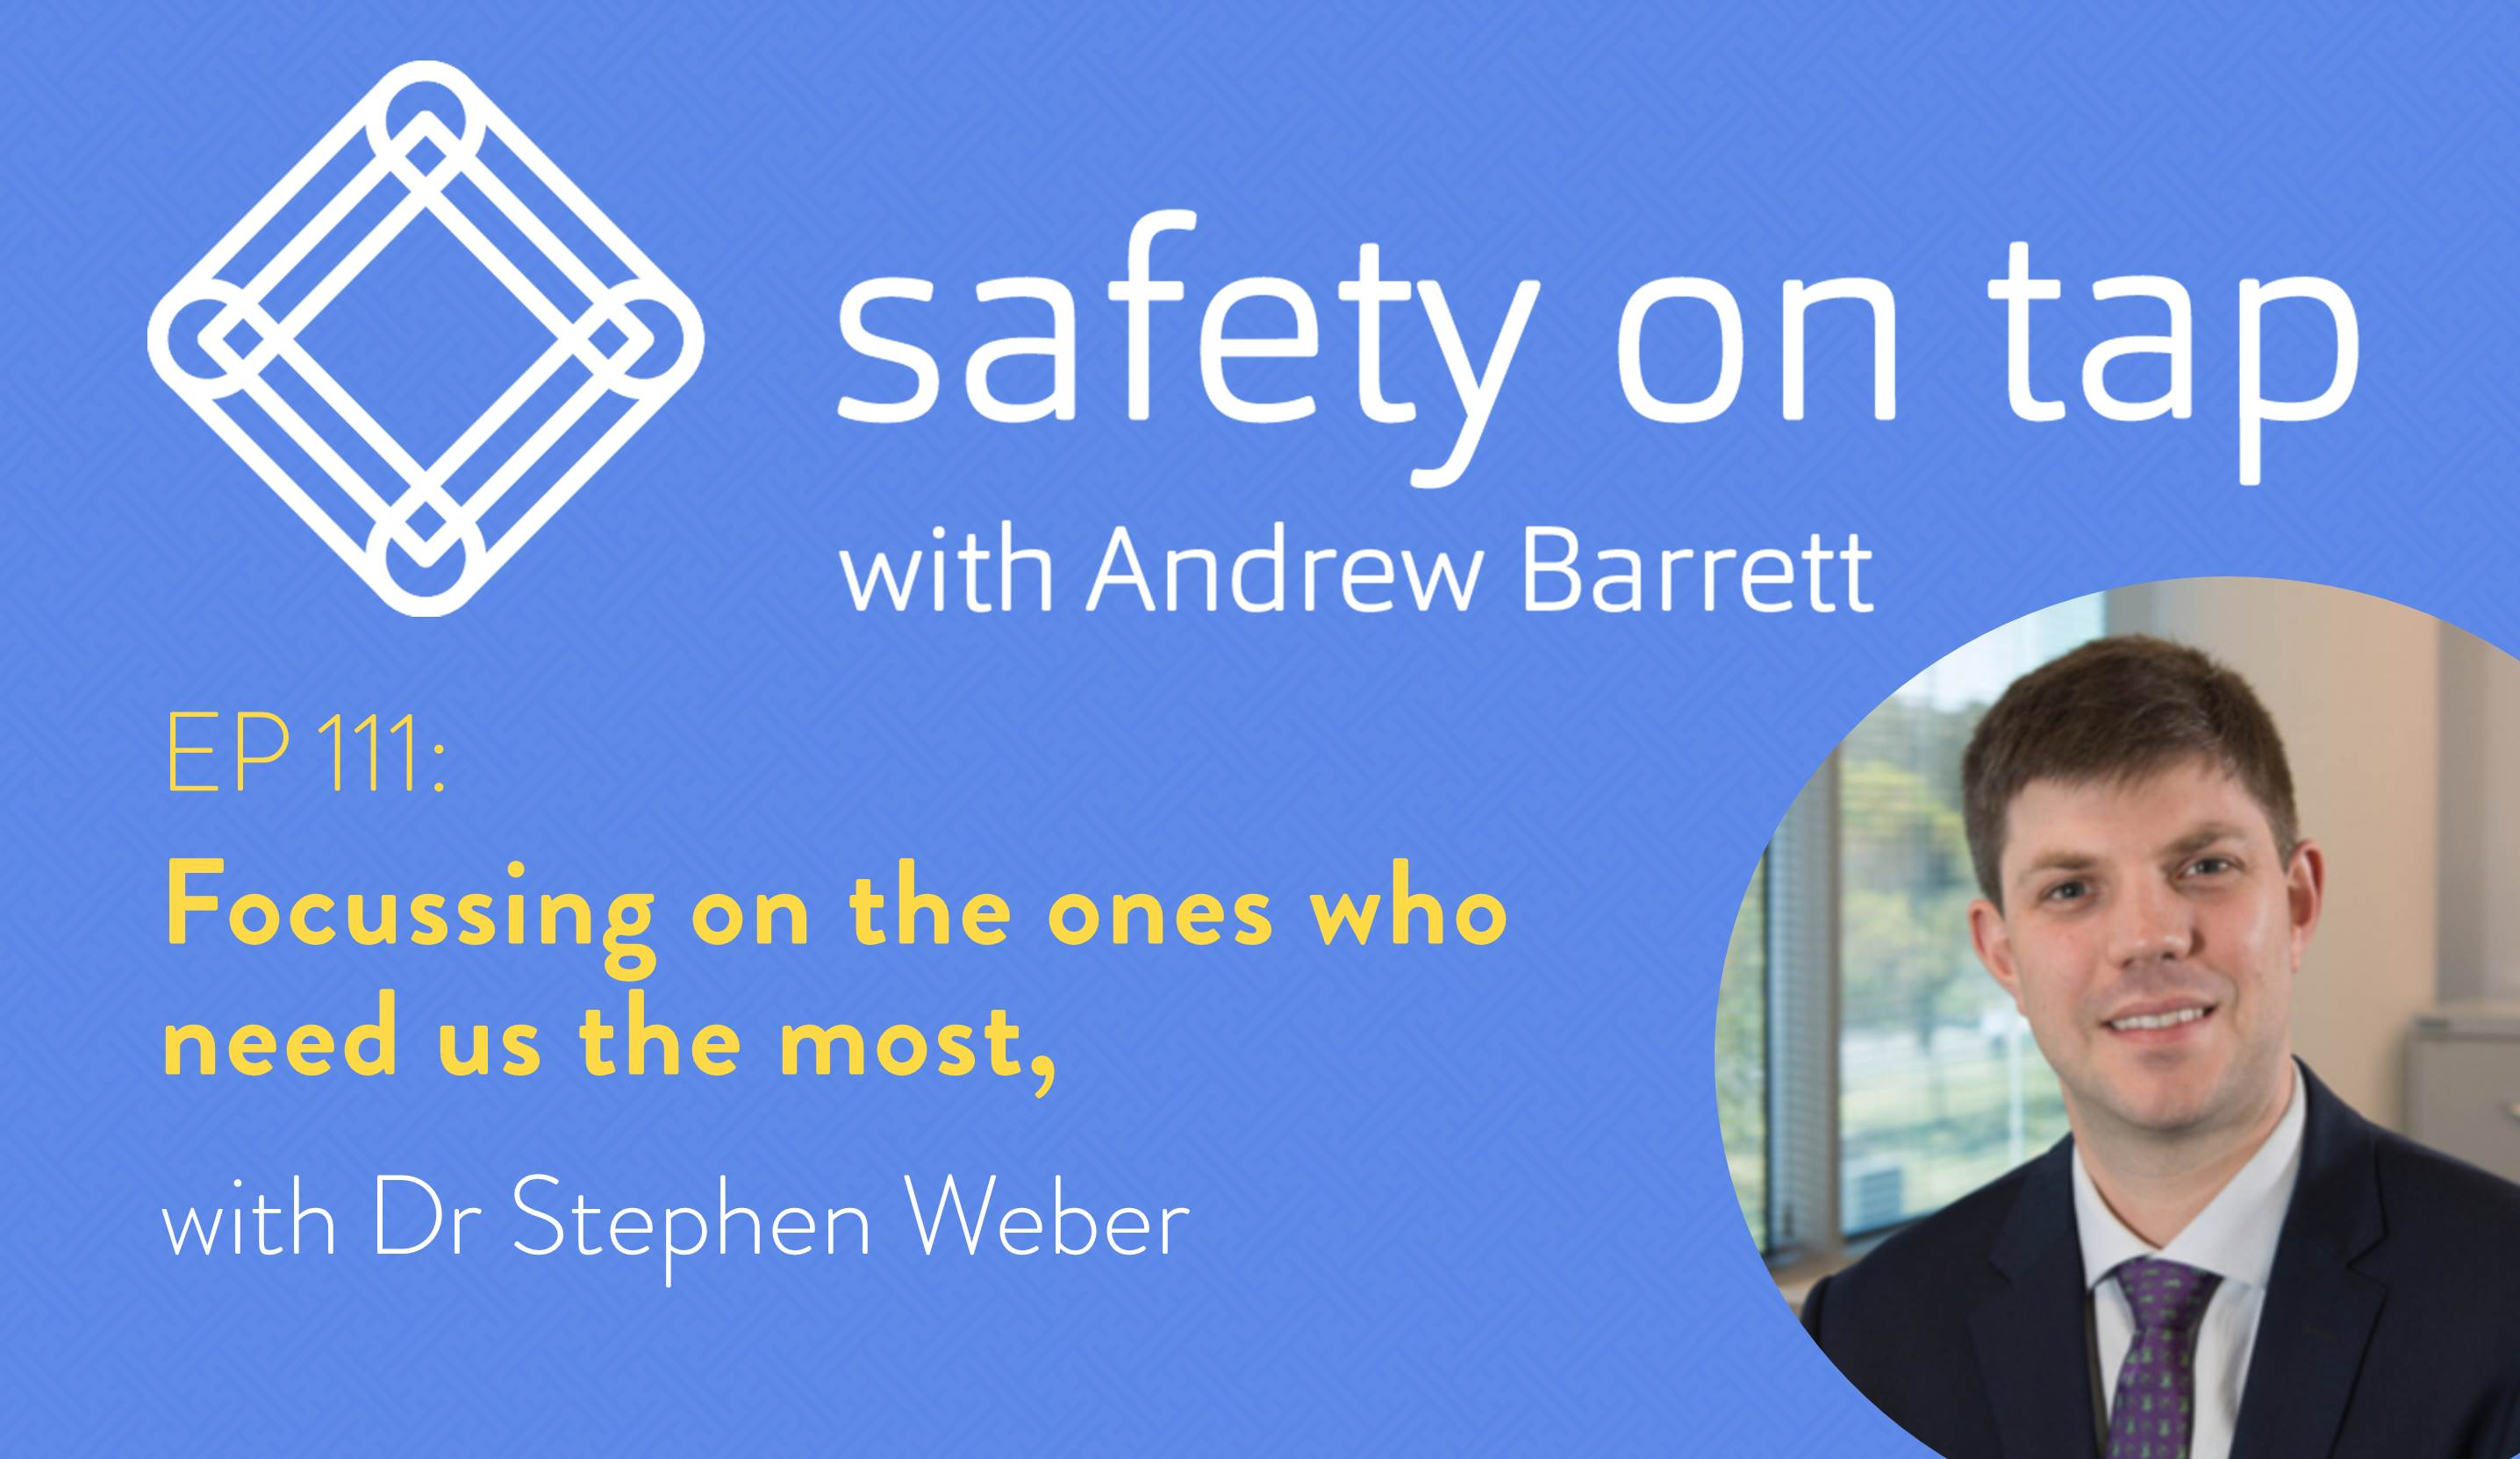 Ep111: Focussing on the ones who need us the most, with Dr Stephen Weber